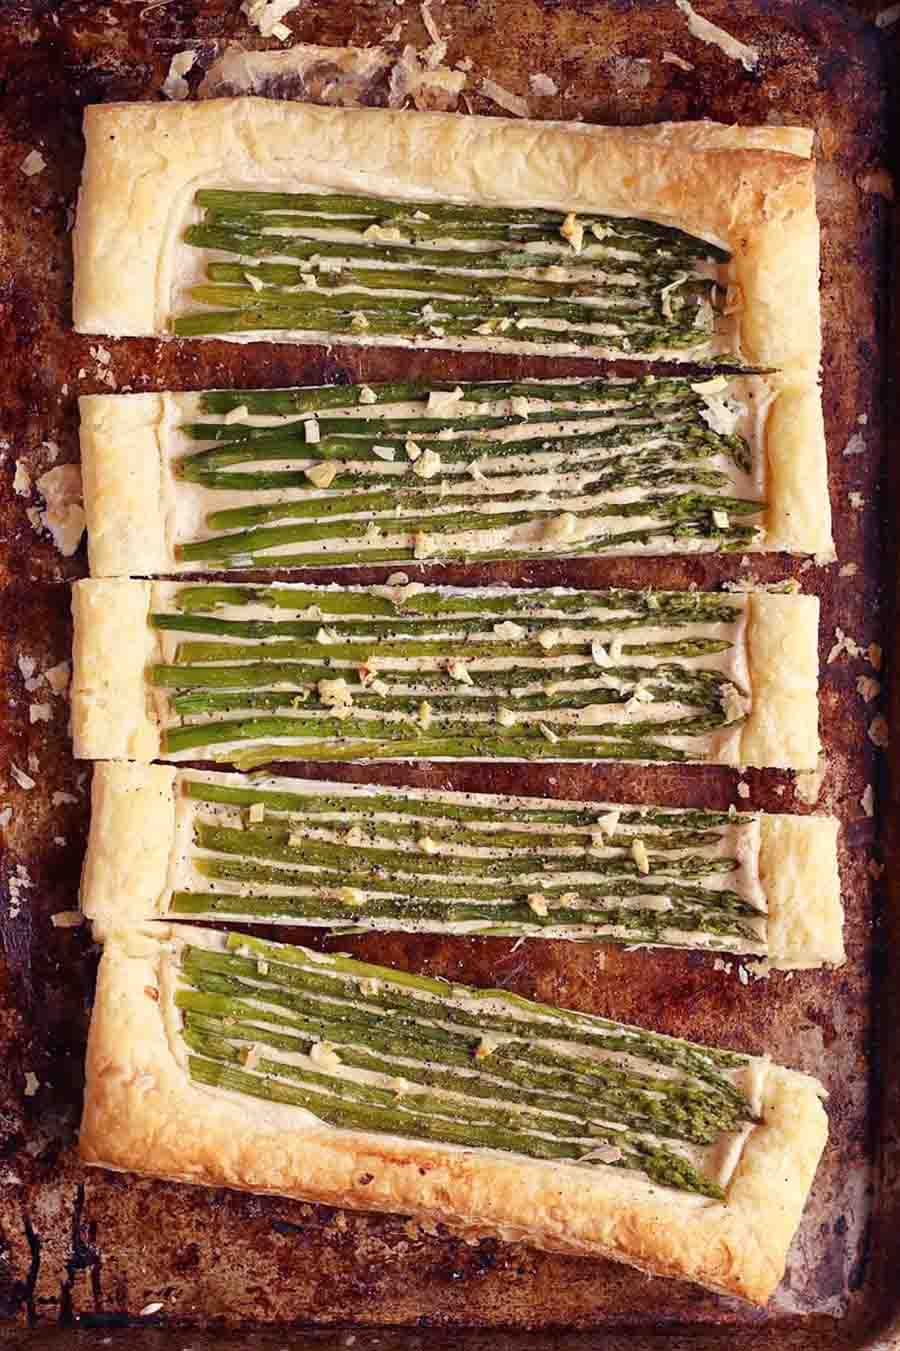 A large tart topped with asparagus and cut into long slices sitting on top of a well-seasoned cooking tray.